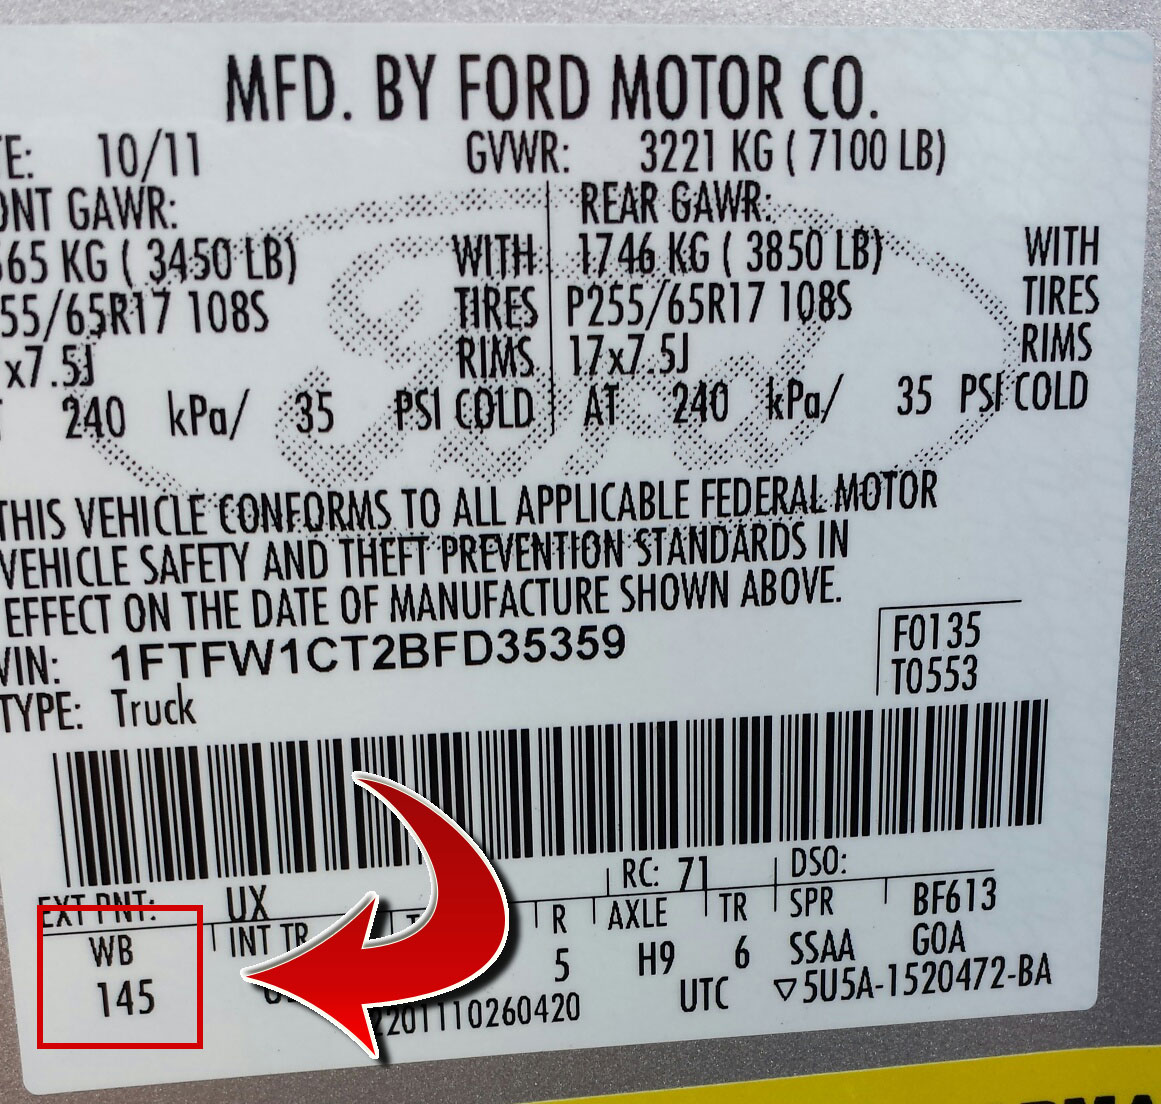 Ford Taurus Keyless Entry Code Location on wiring diagram for 2008 mercury mariner